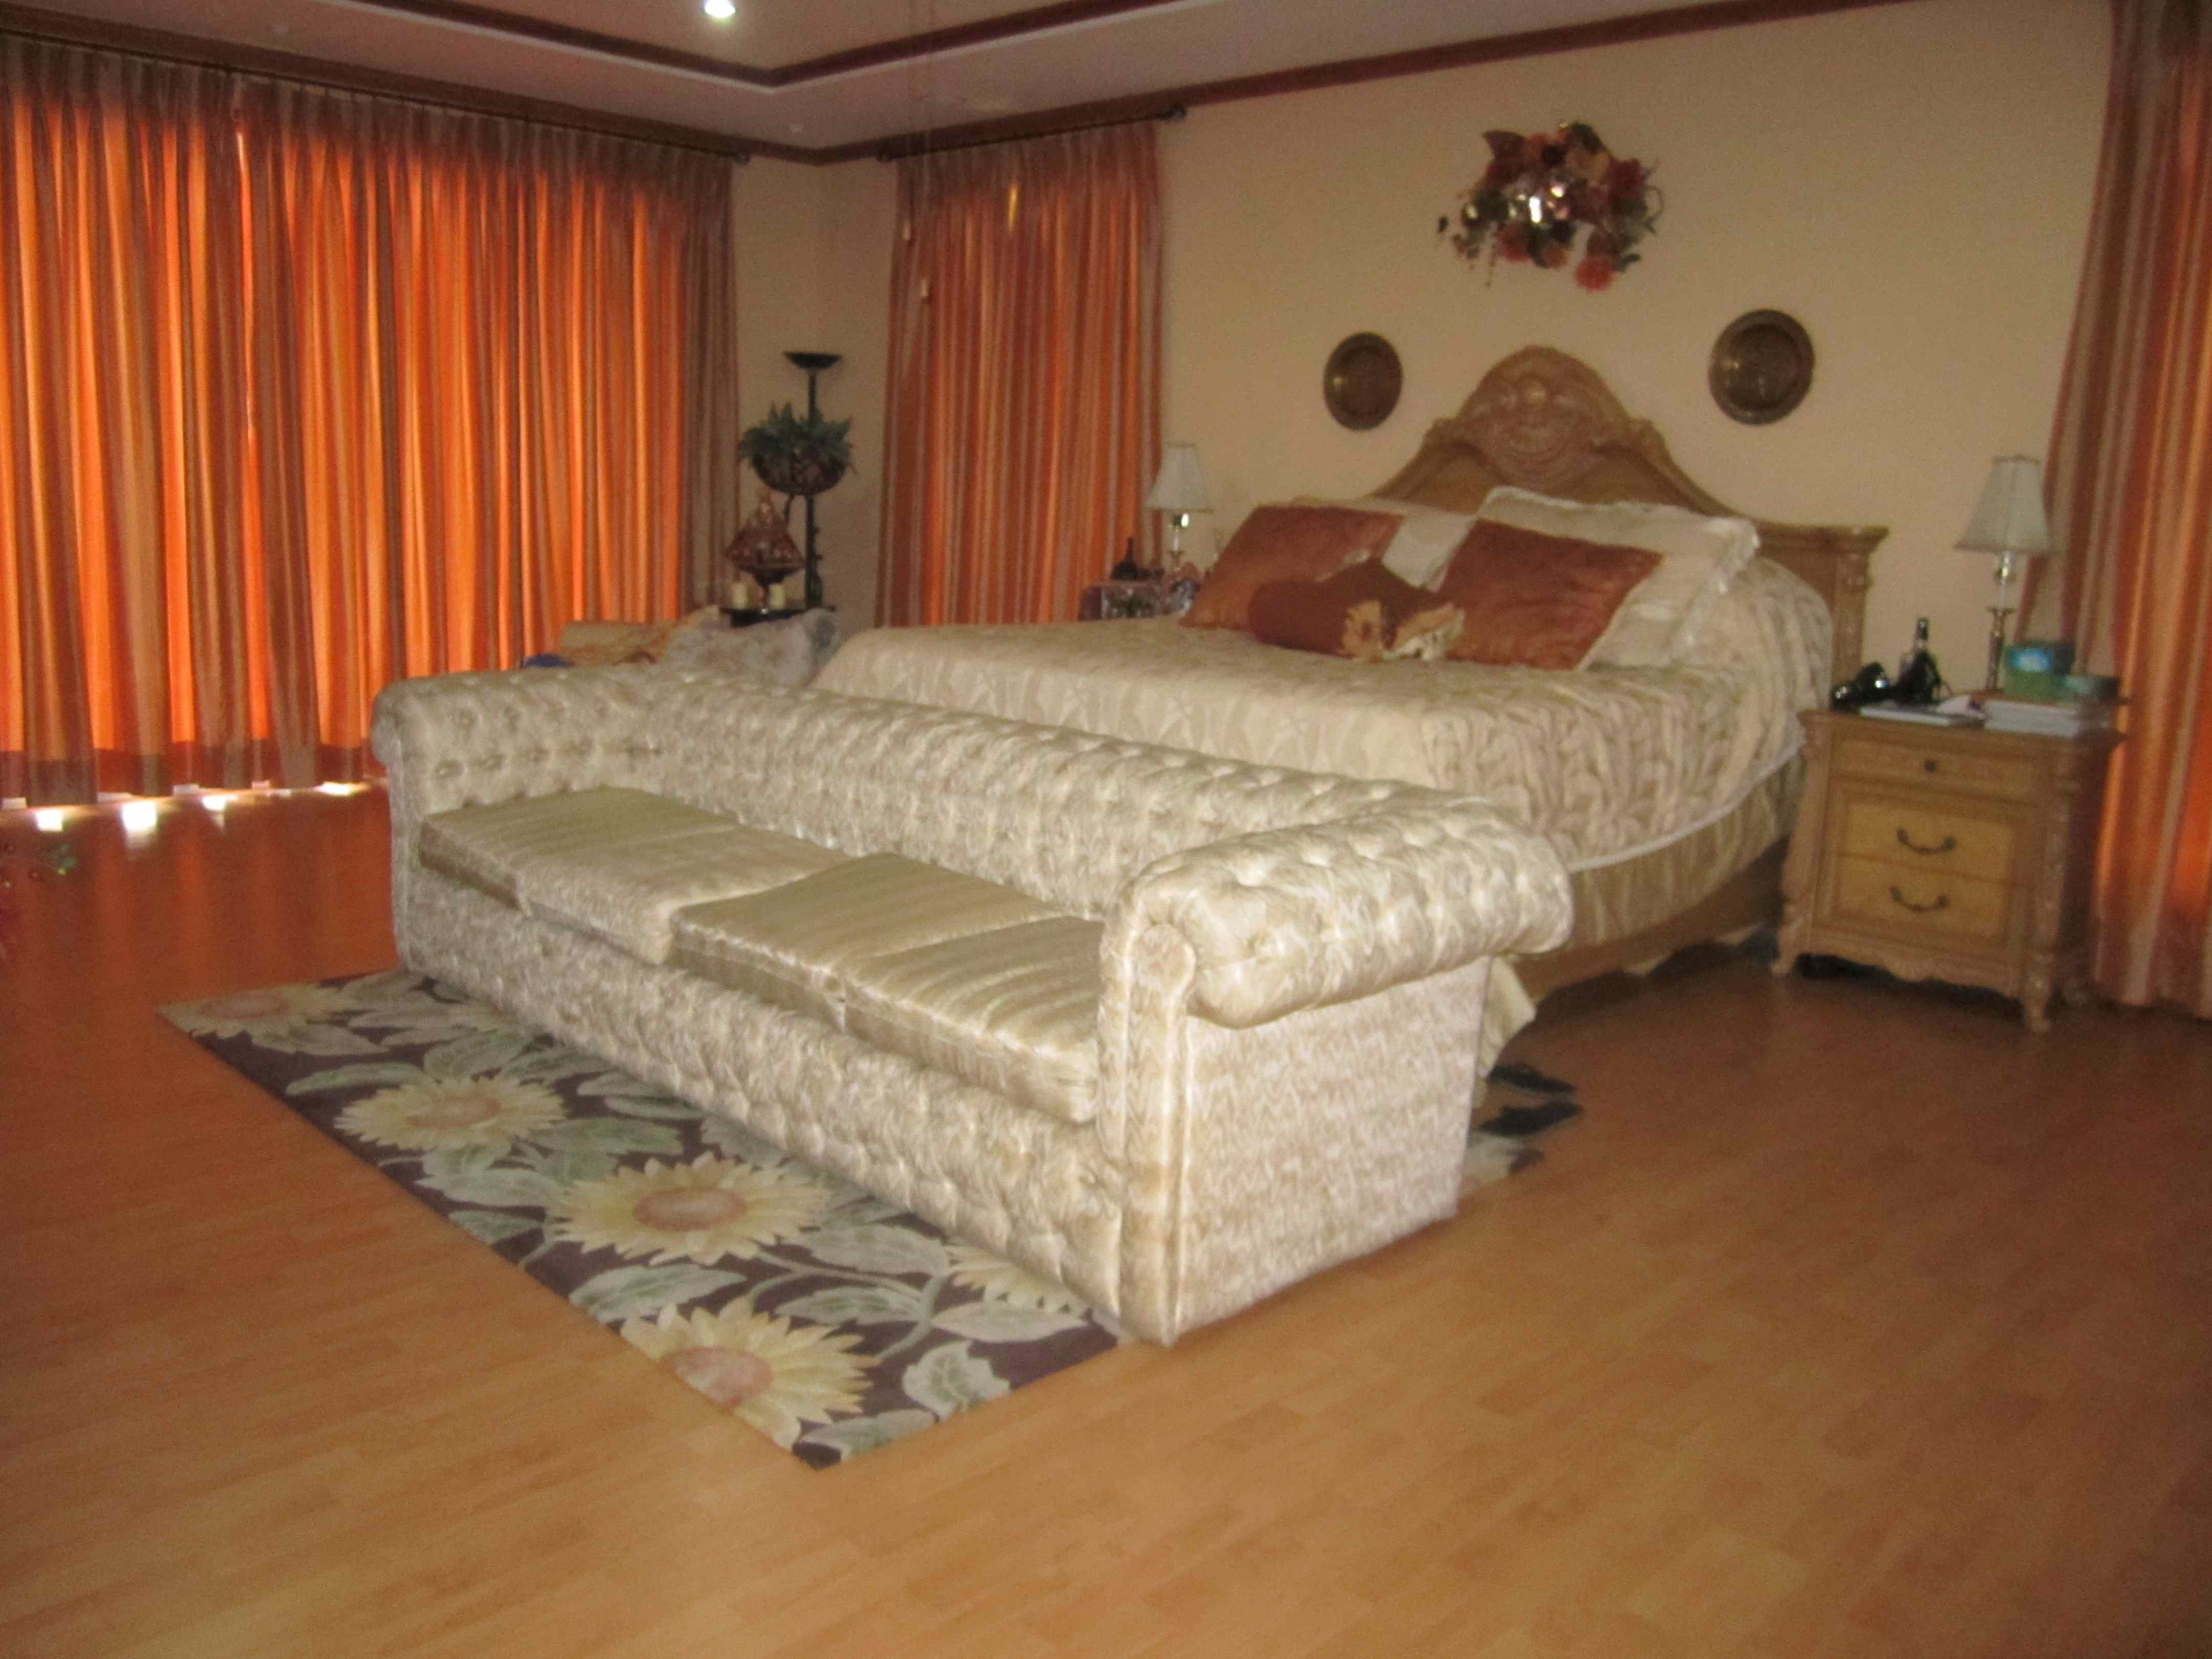 FOR SALE: House Abra 26